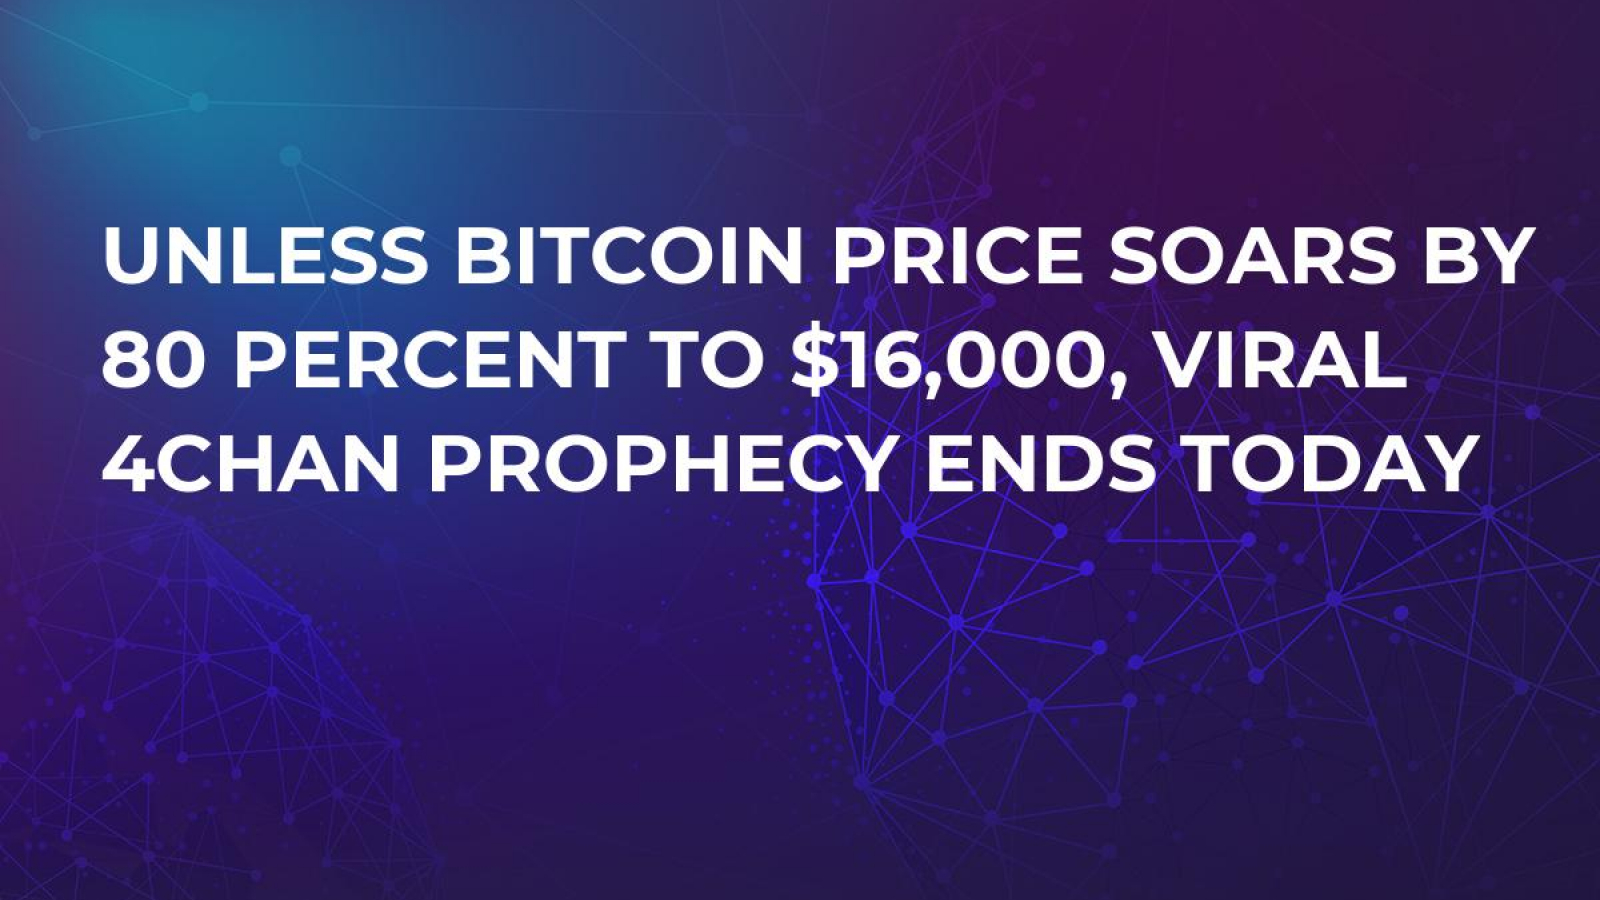 Unless Bitcoin Price Soars by 80 Percent to $16,000, Viral 4chan Prophecy Ends